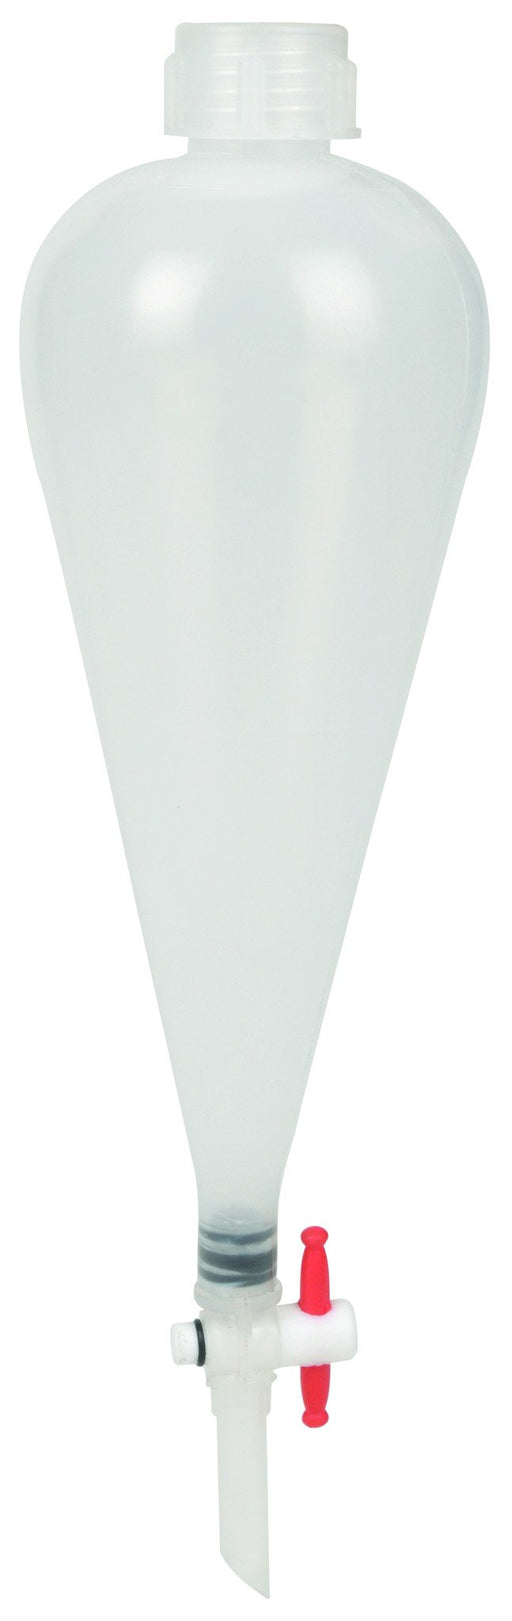 Separating Funnel, 100ml - Polypropylene - Polypropylene Stopcock, PTFE Plug - Leak-Proof Screw Cap - Eisco Labs